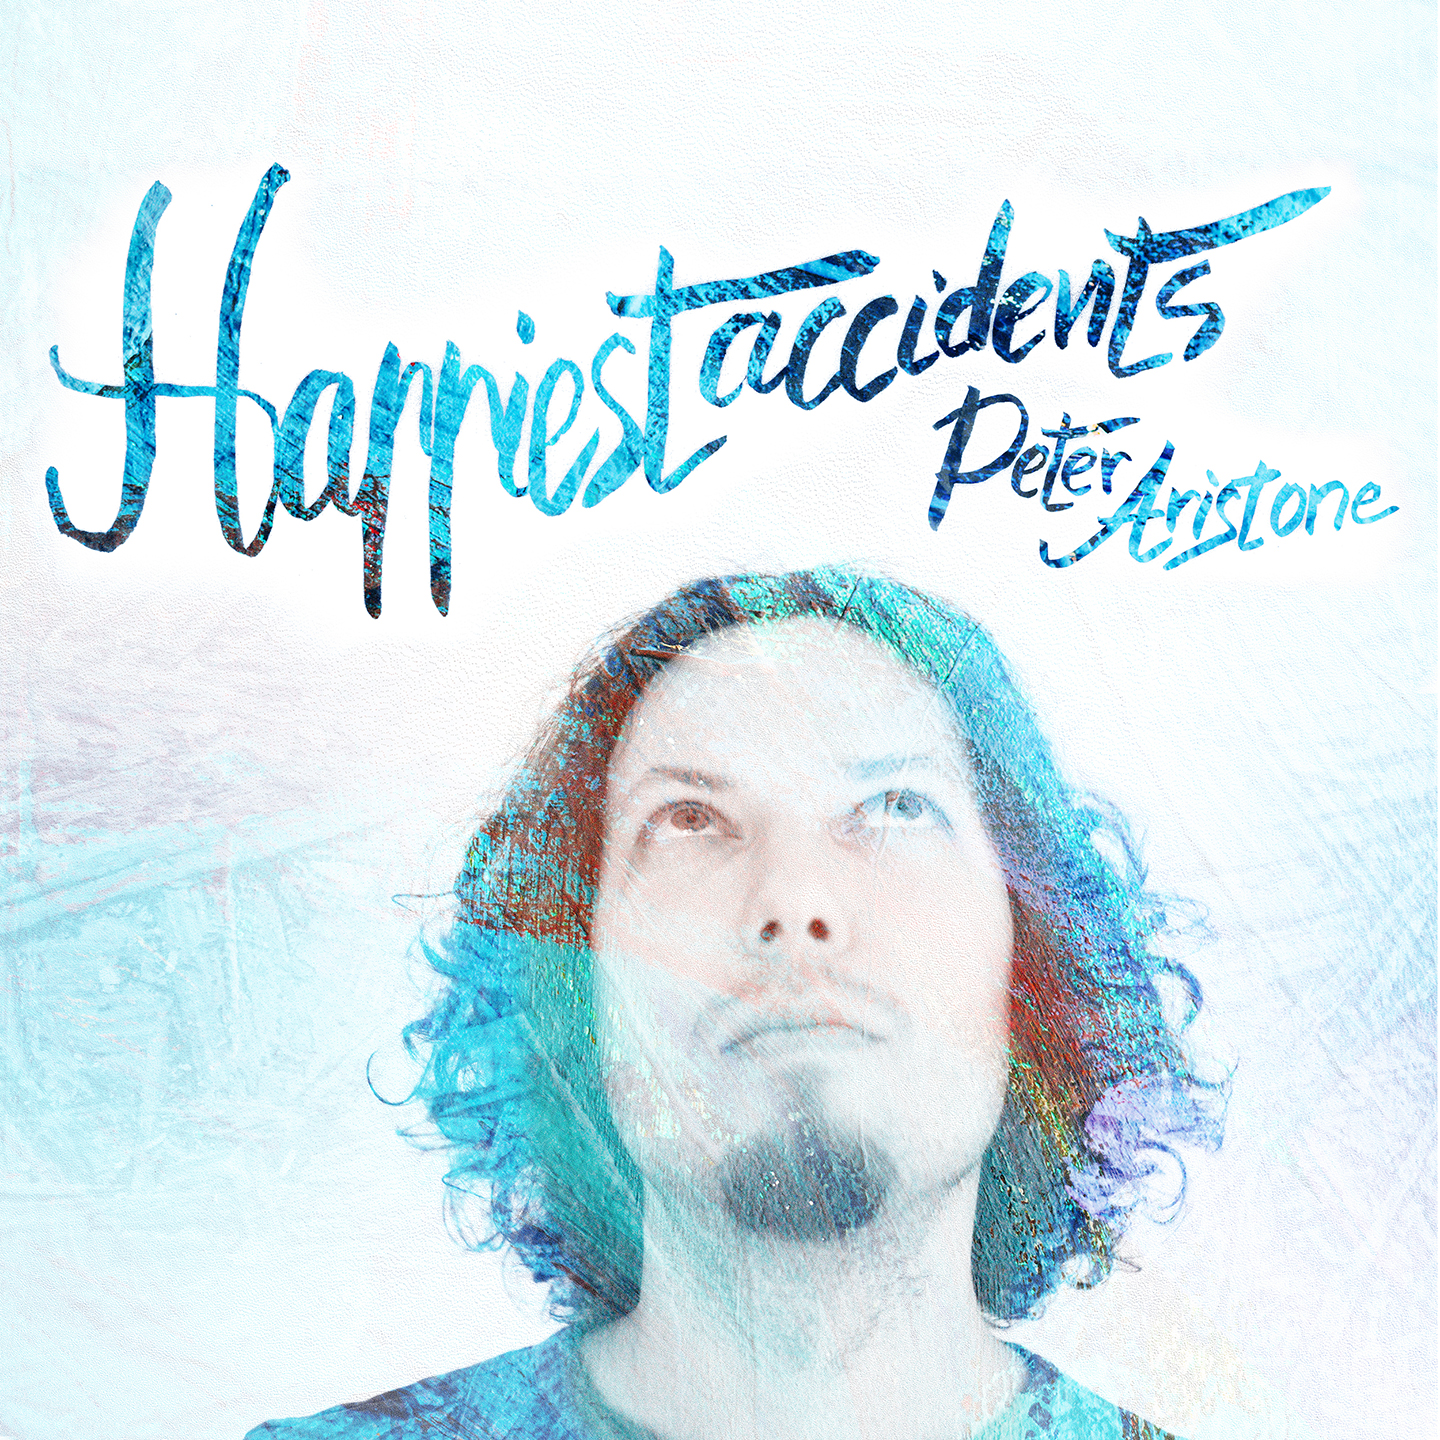 Peter Aristone_Happiest Accidents_EP cover artwork (1).jpg